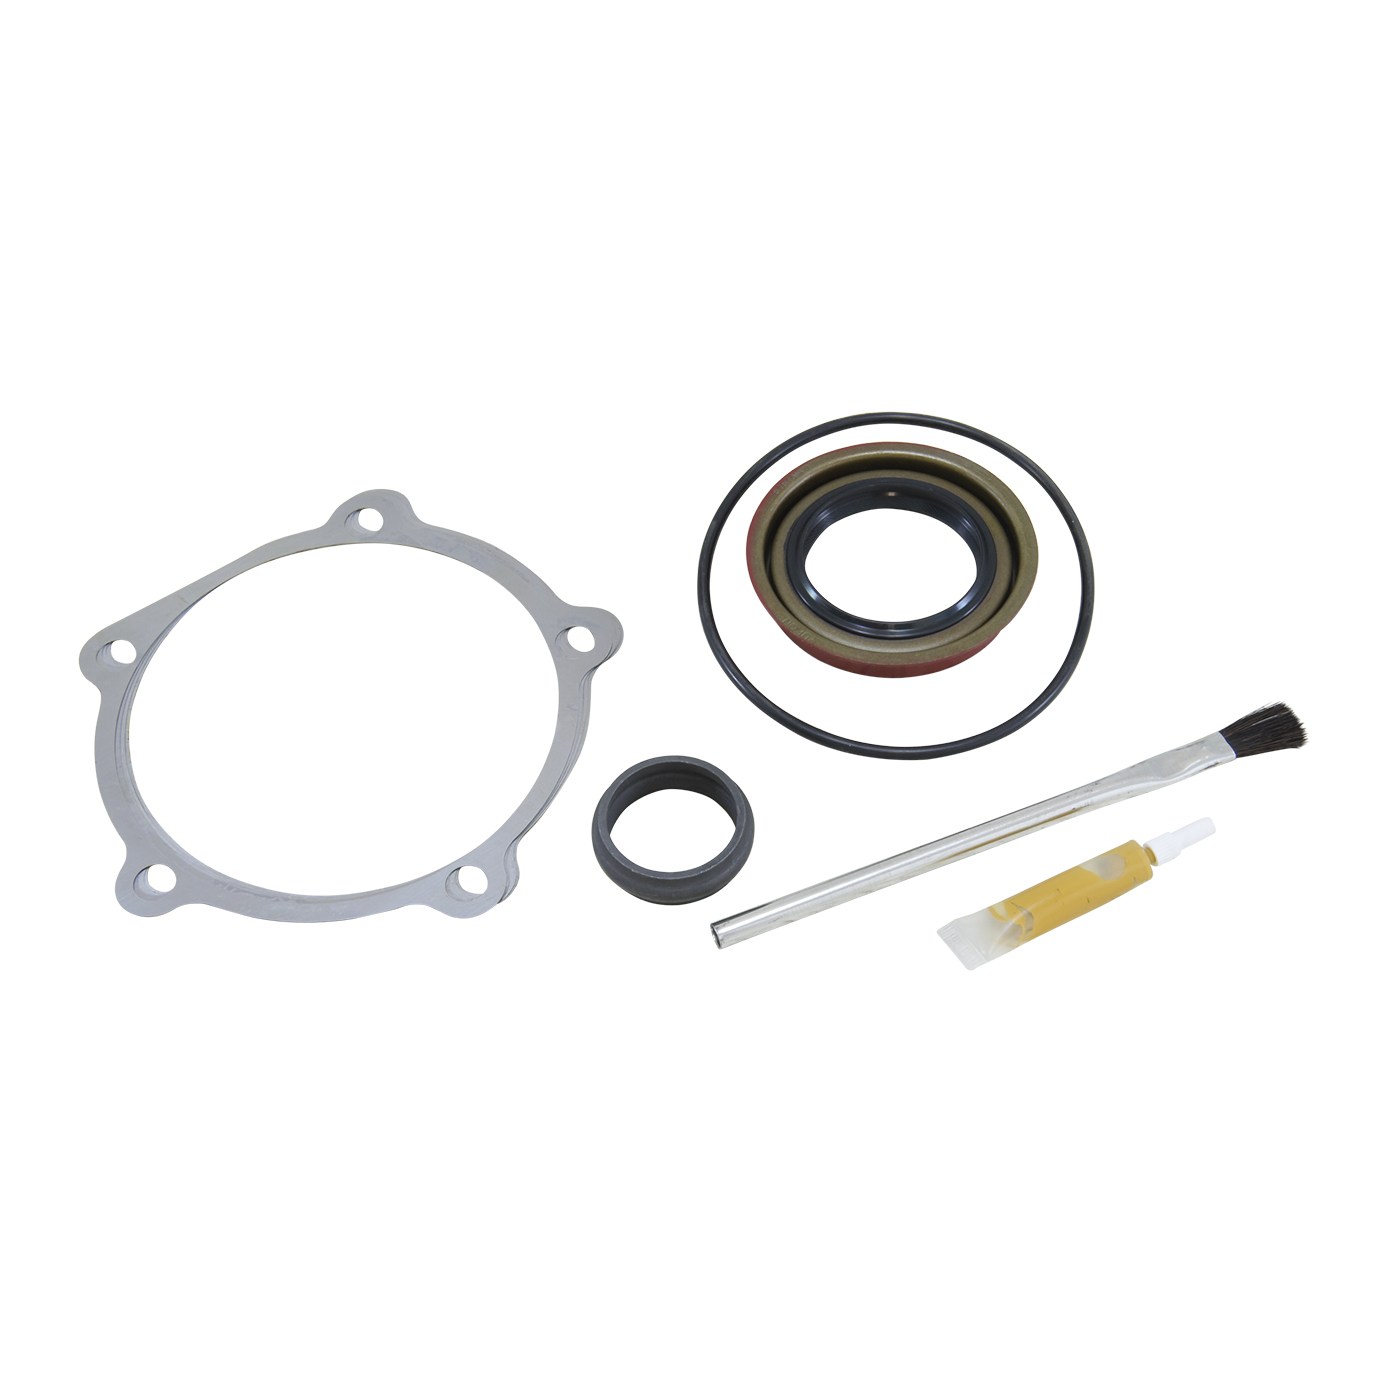 MK F8 - Yukon Minor install kit for Ford 8